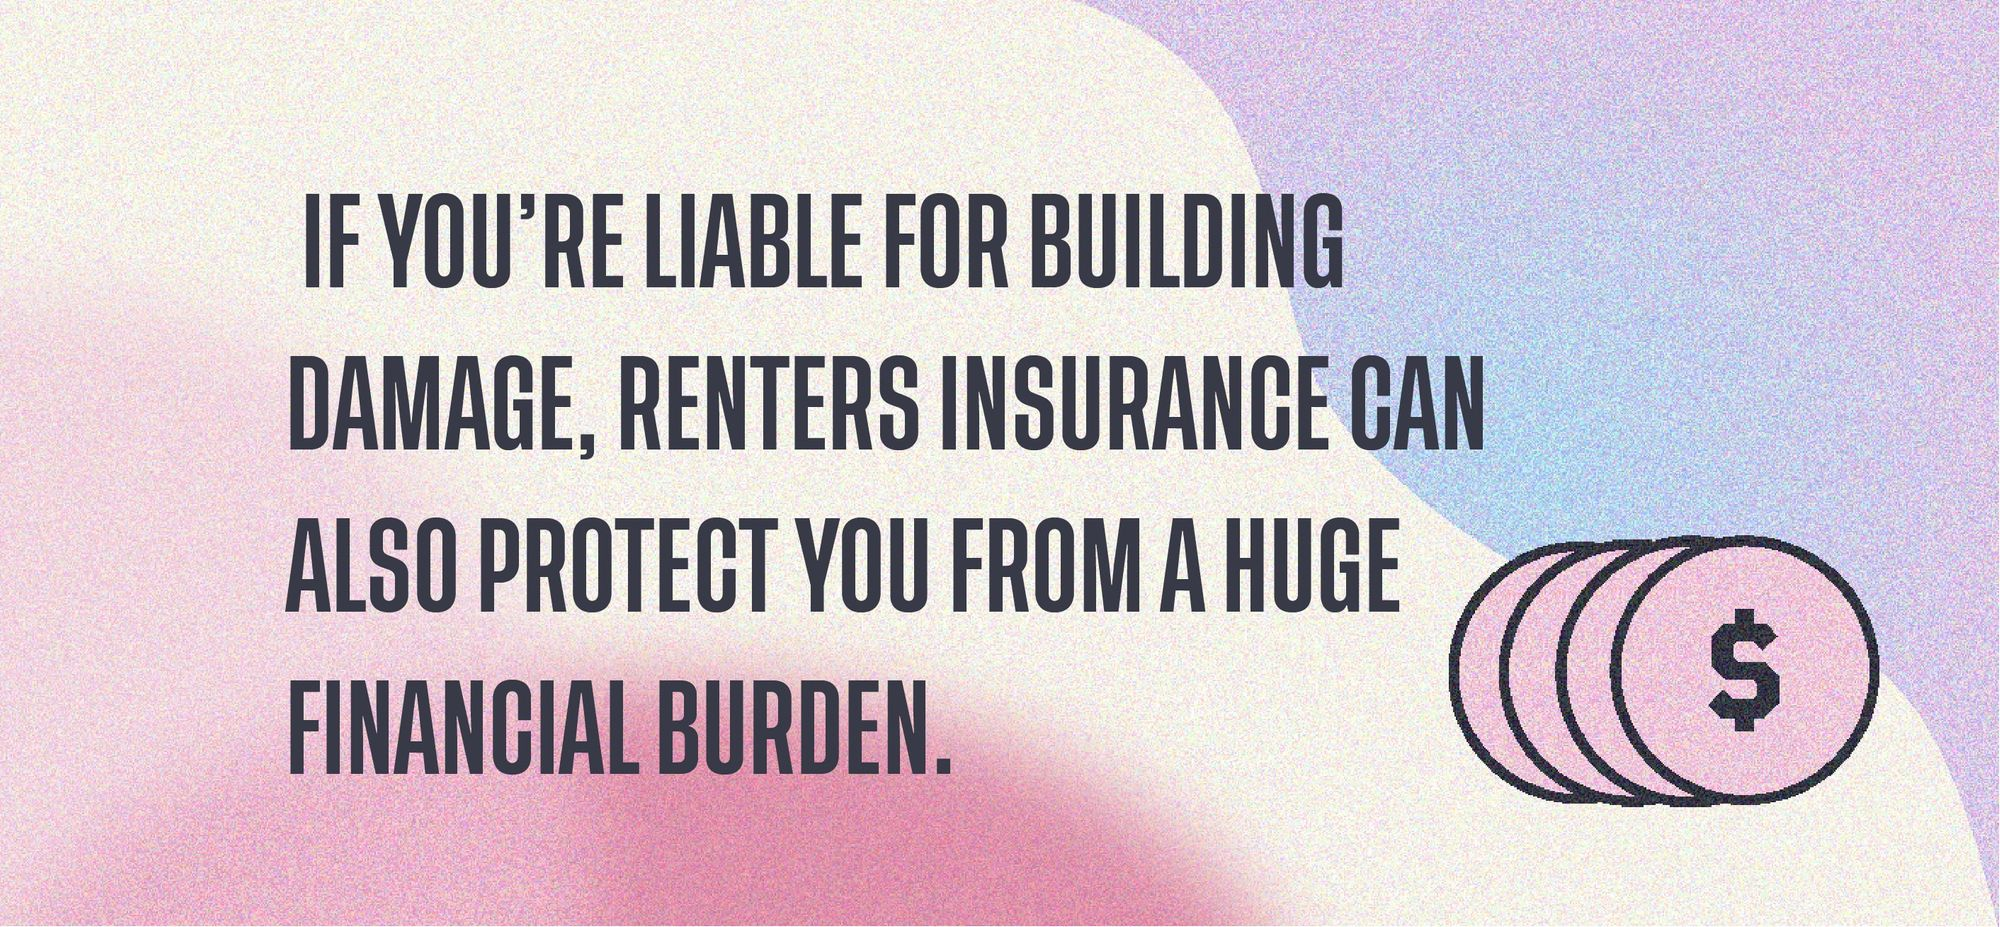 if you're liable for building damage, renters insurance can also protect you from a huge financial burden.